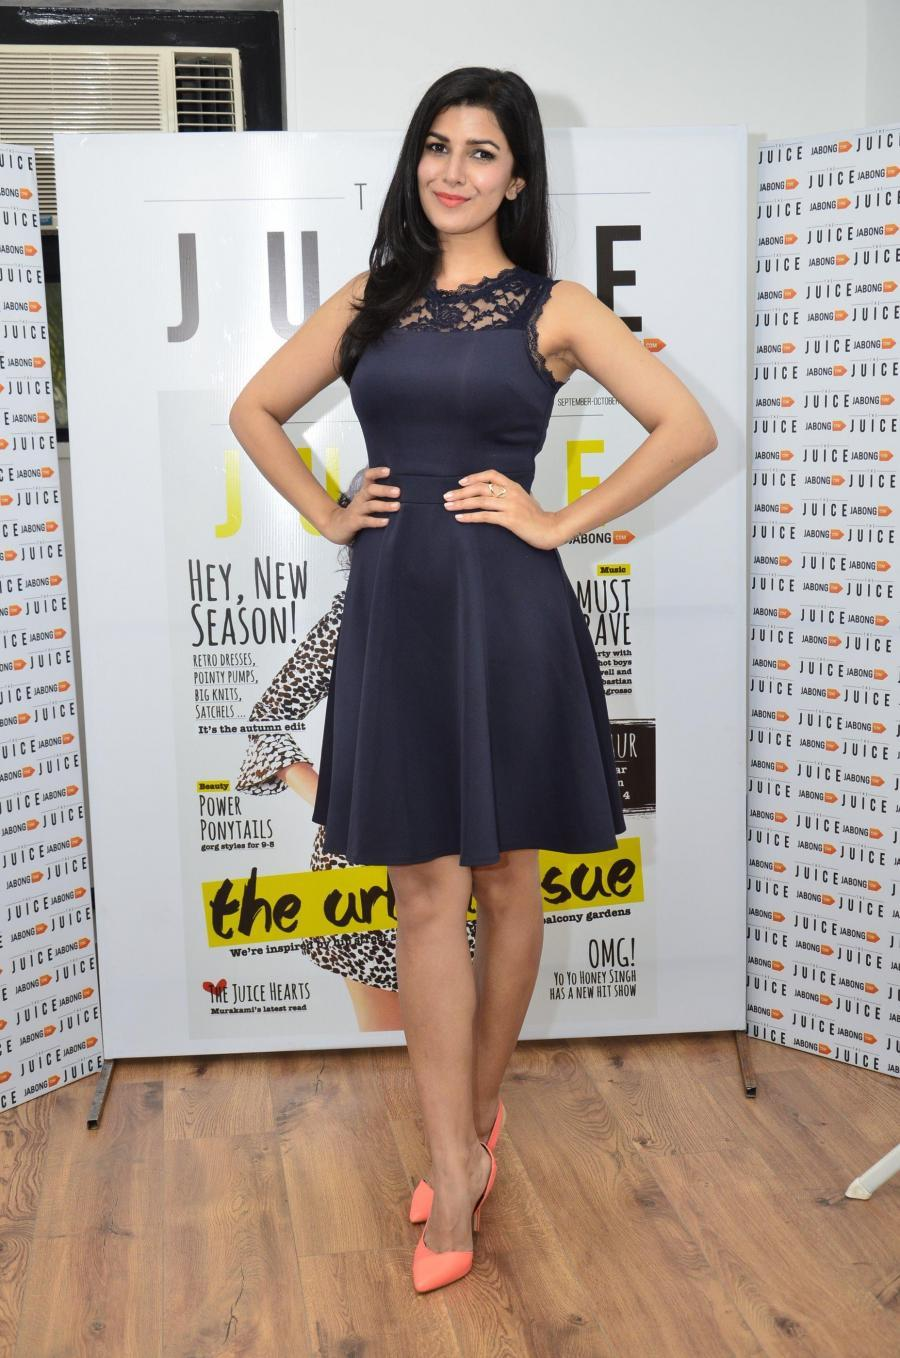 Actor Nimrat Kaur during the unveiling of cover of September - October issue of The Juice magazine for Jabong.com in Mumbai, on Sept. 18, 2014.(Photo: IANS)